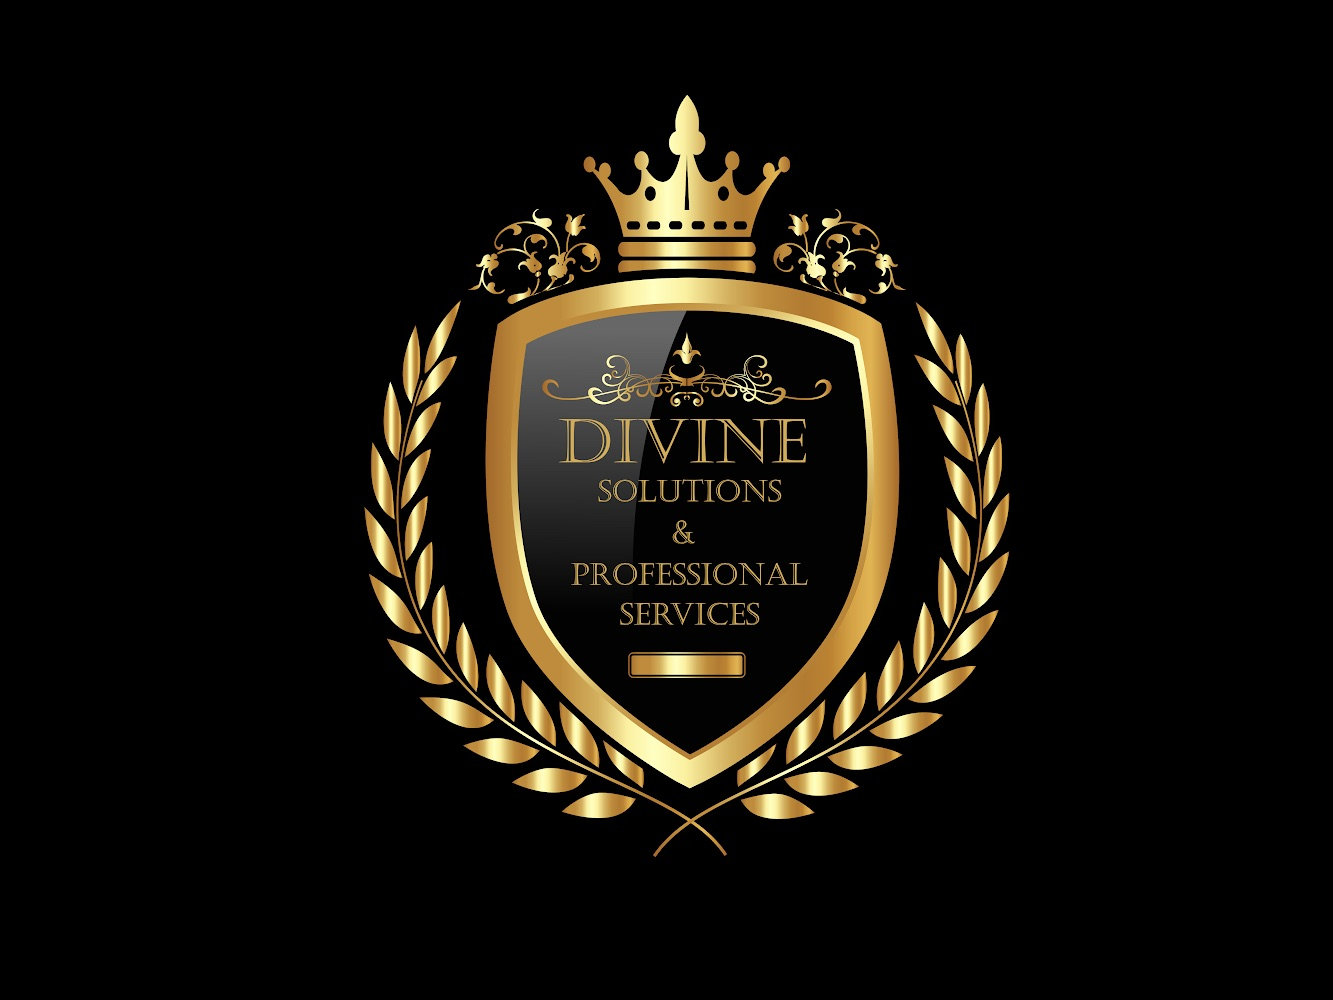 Divine Solutions & Professional Services image